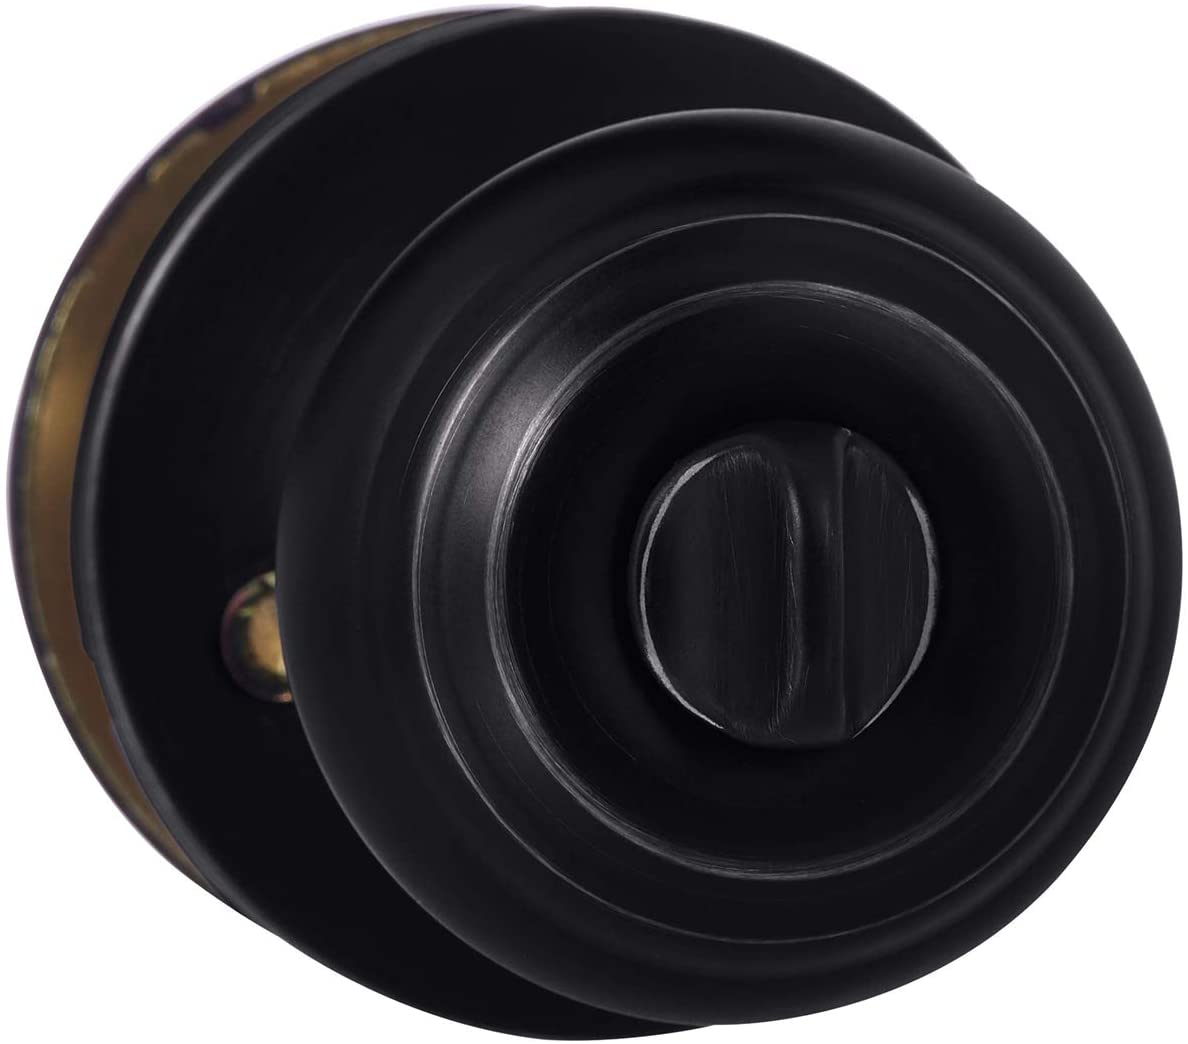 Review of AmazonBasics Bedroom/Bathroom Door Knob With Lock, Classic, Matte Black